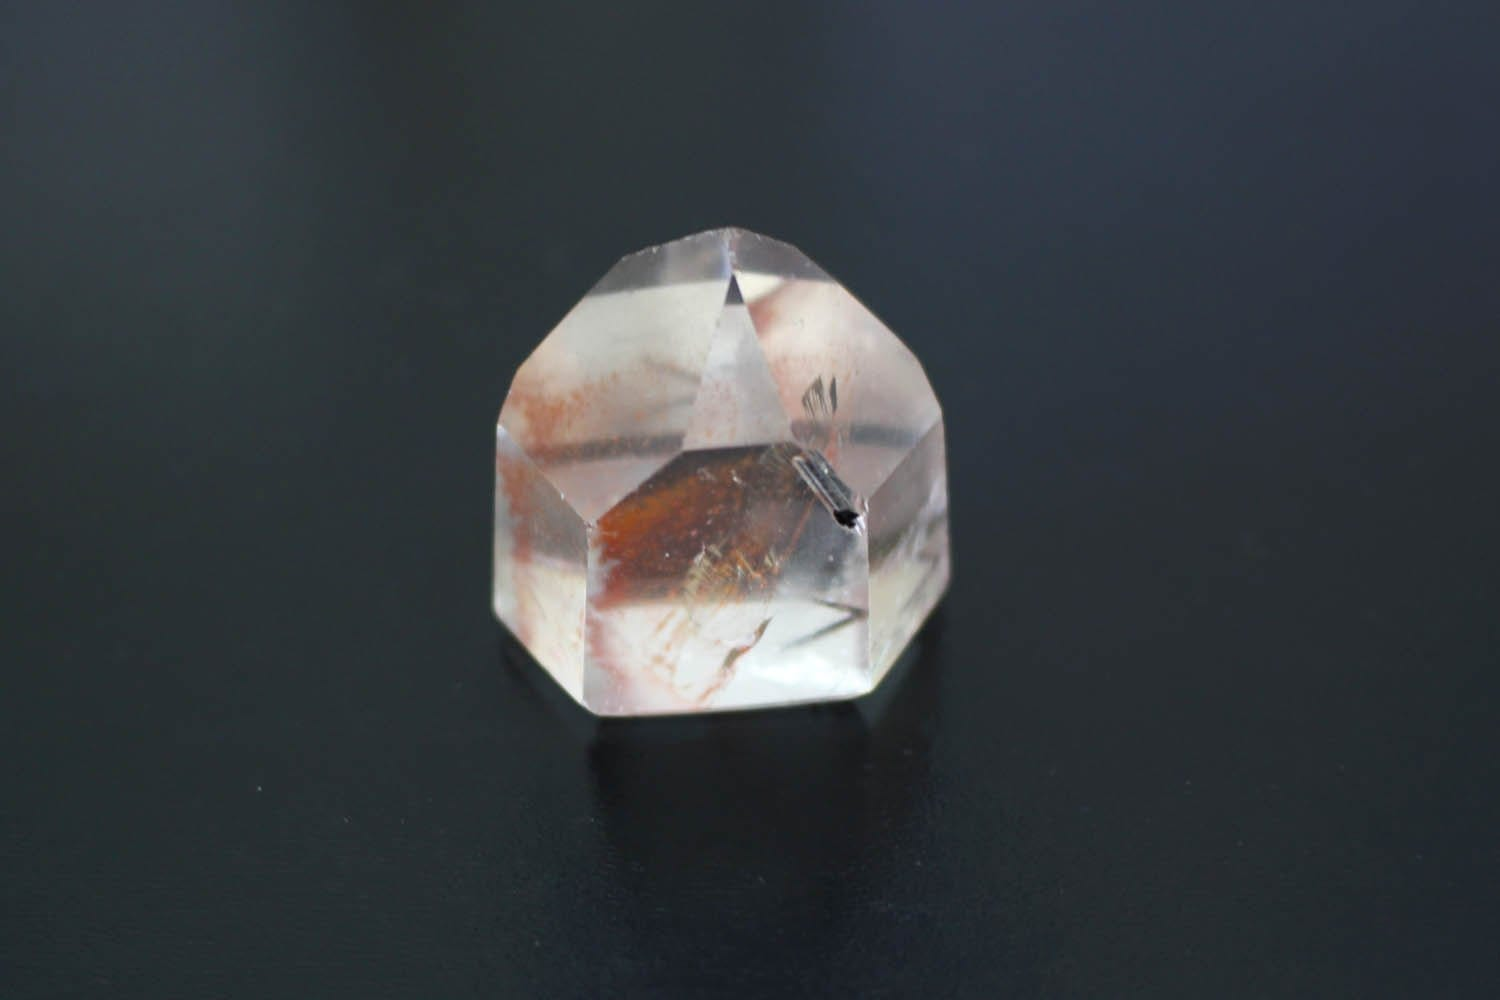 Crystal Points - Crystal Polished Point With Inclusions - Wire Wrapping - Spiritual Gift - Jewelry Supply - Boho Style - (RK91B16-02)